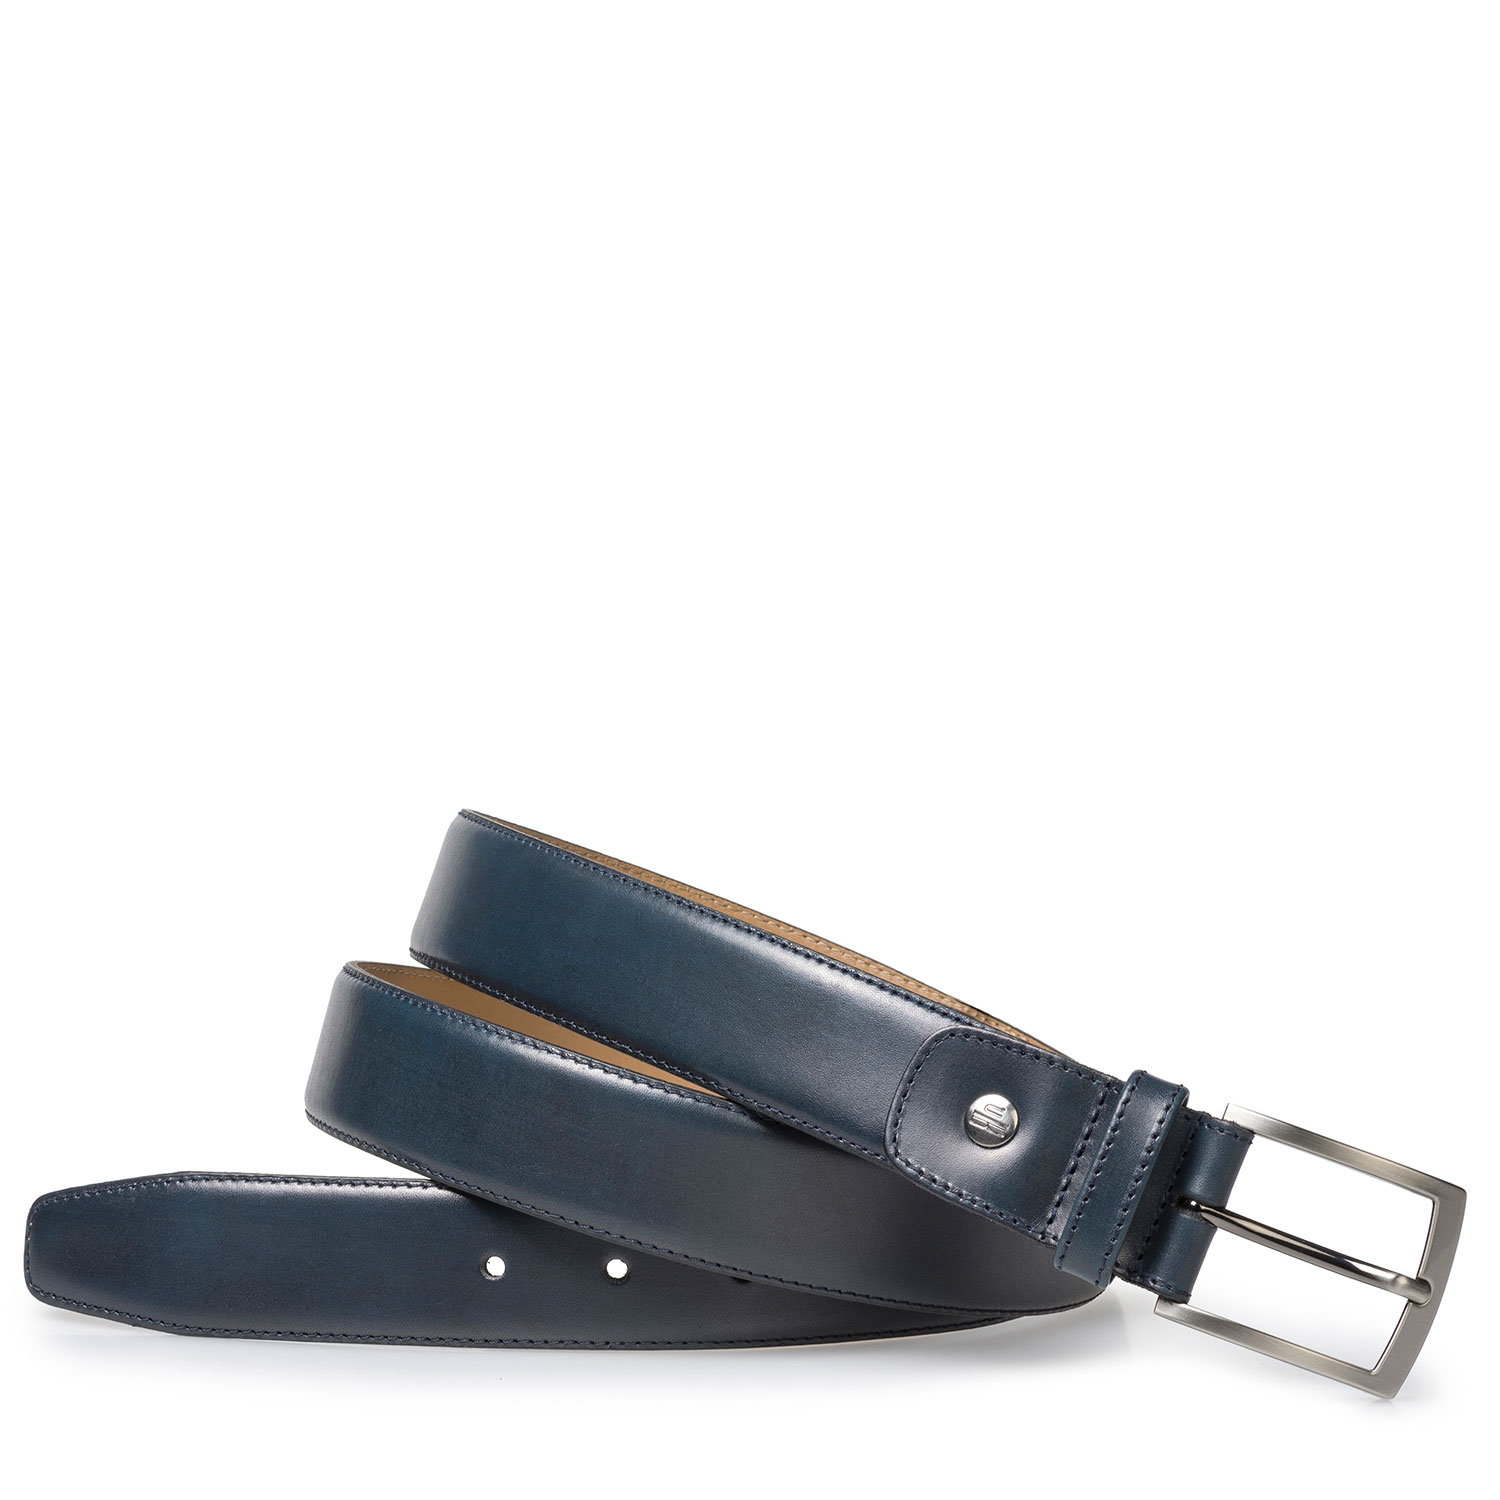 75076/39 - Blue calf leather belt